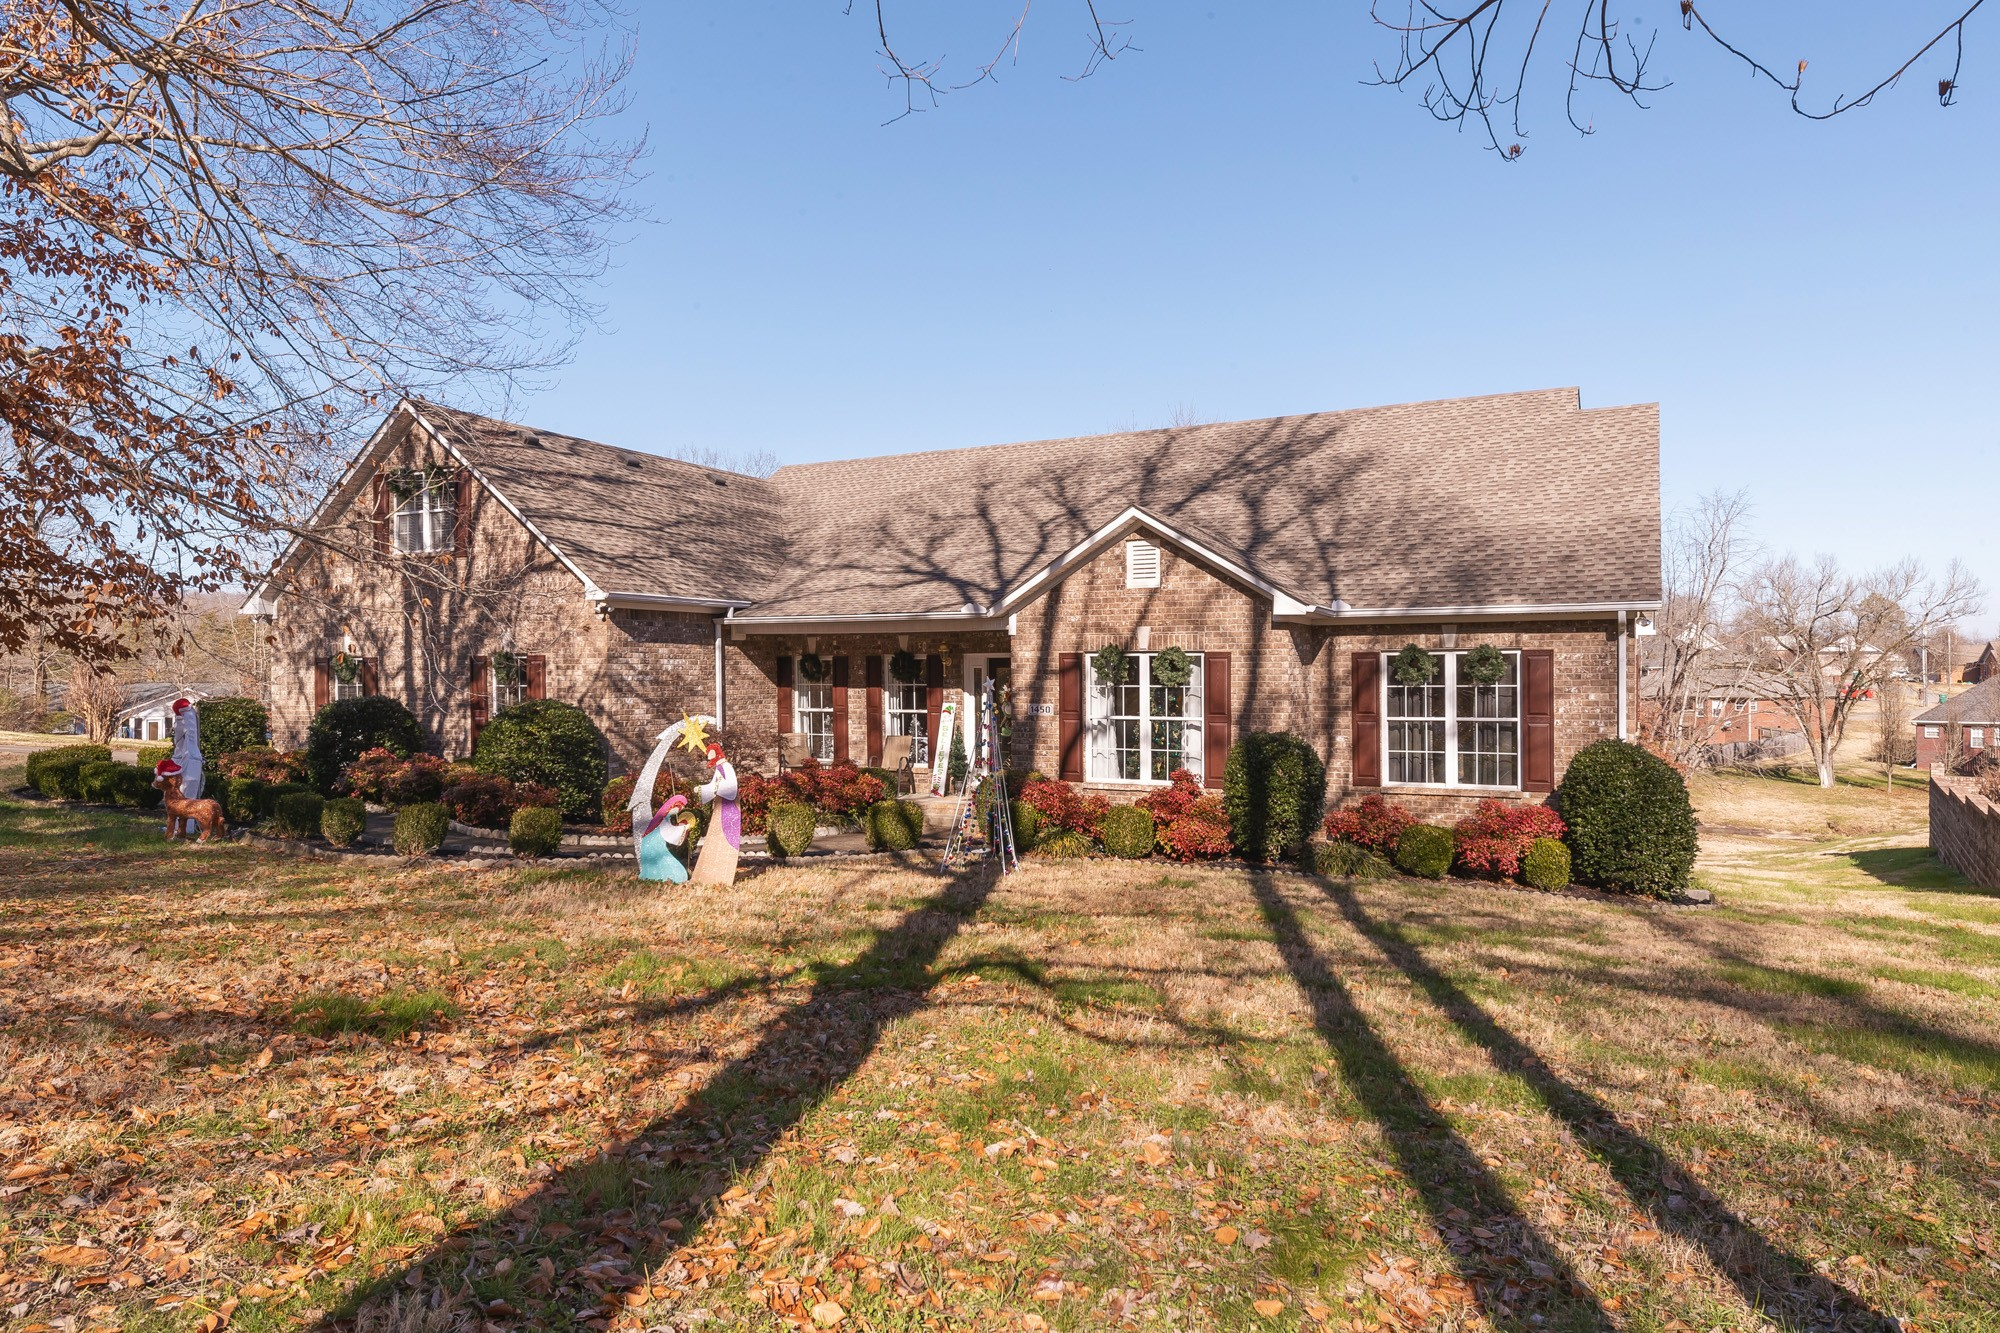 1450 Keith Kove Property Photo - Lewisburg, TN real estate listing